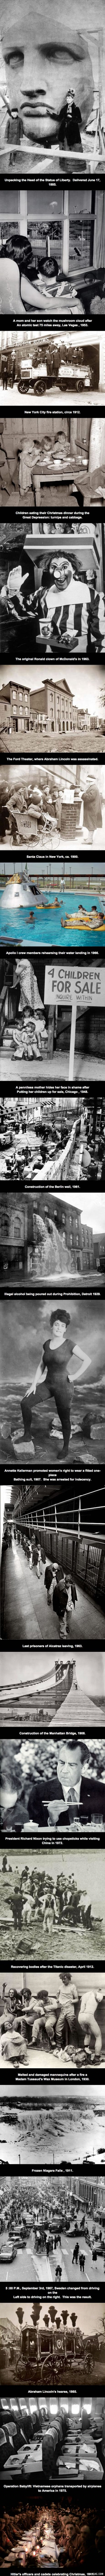 Odd & Fascinating old Pictures